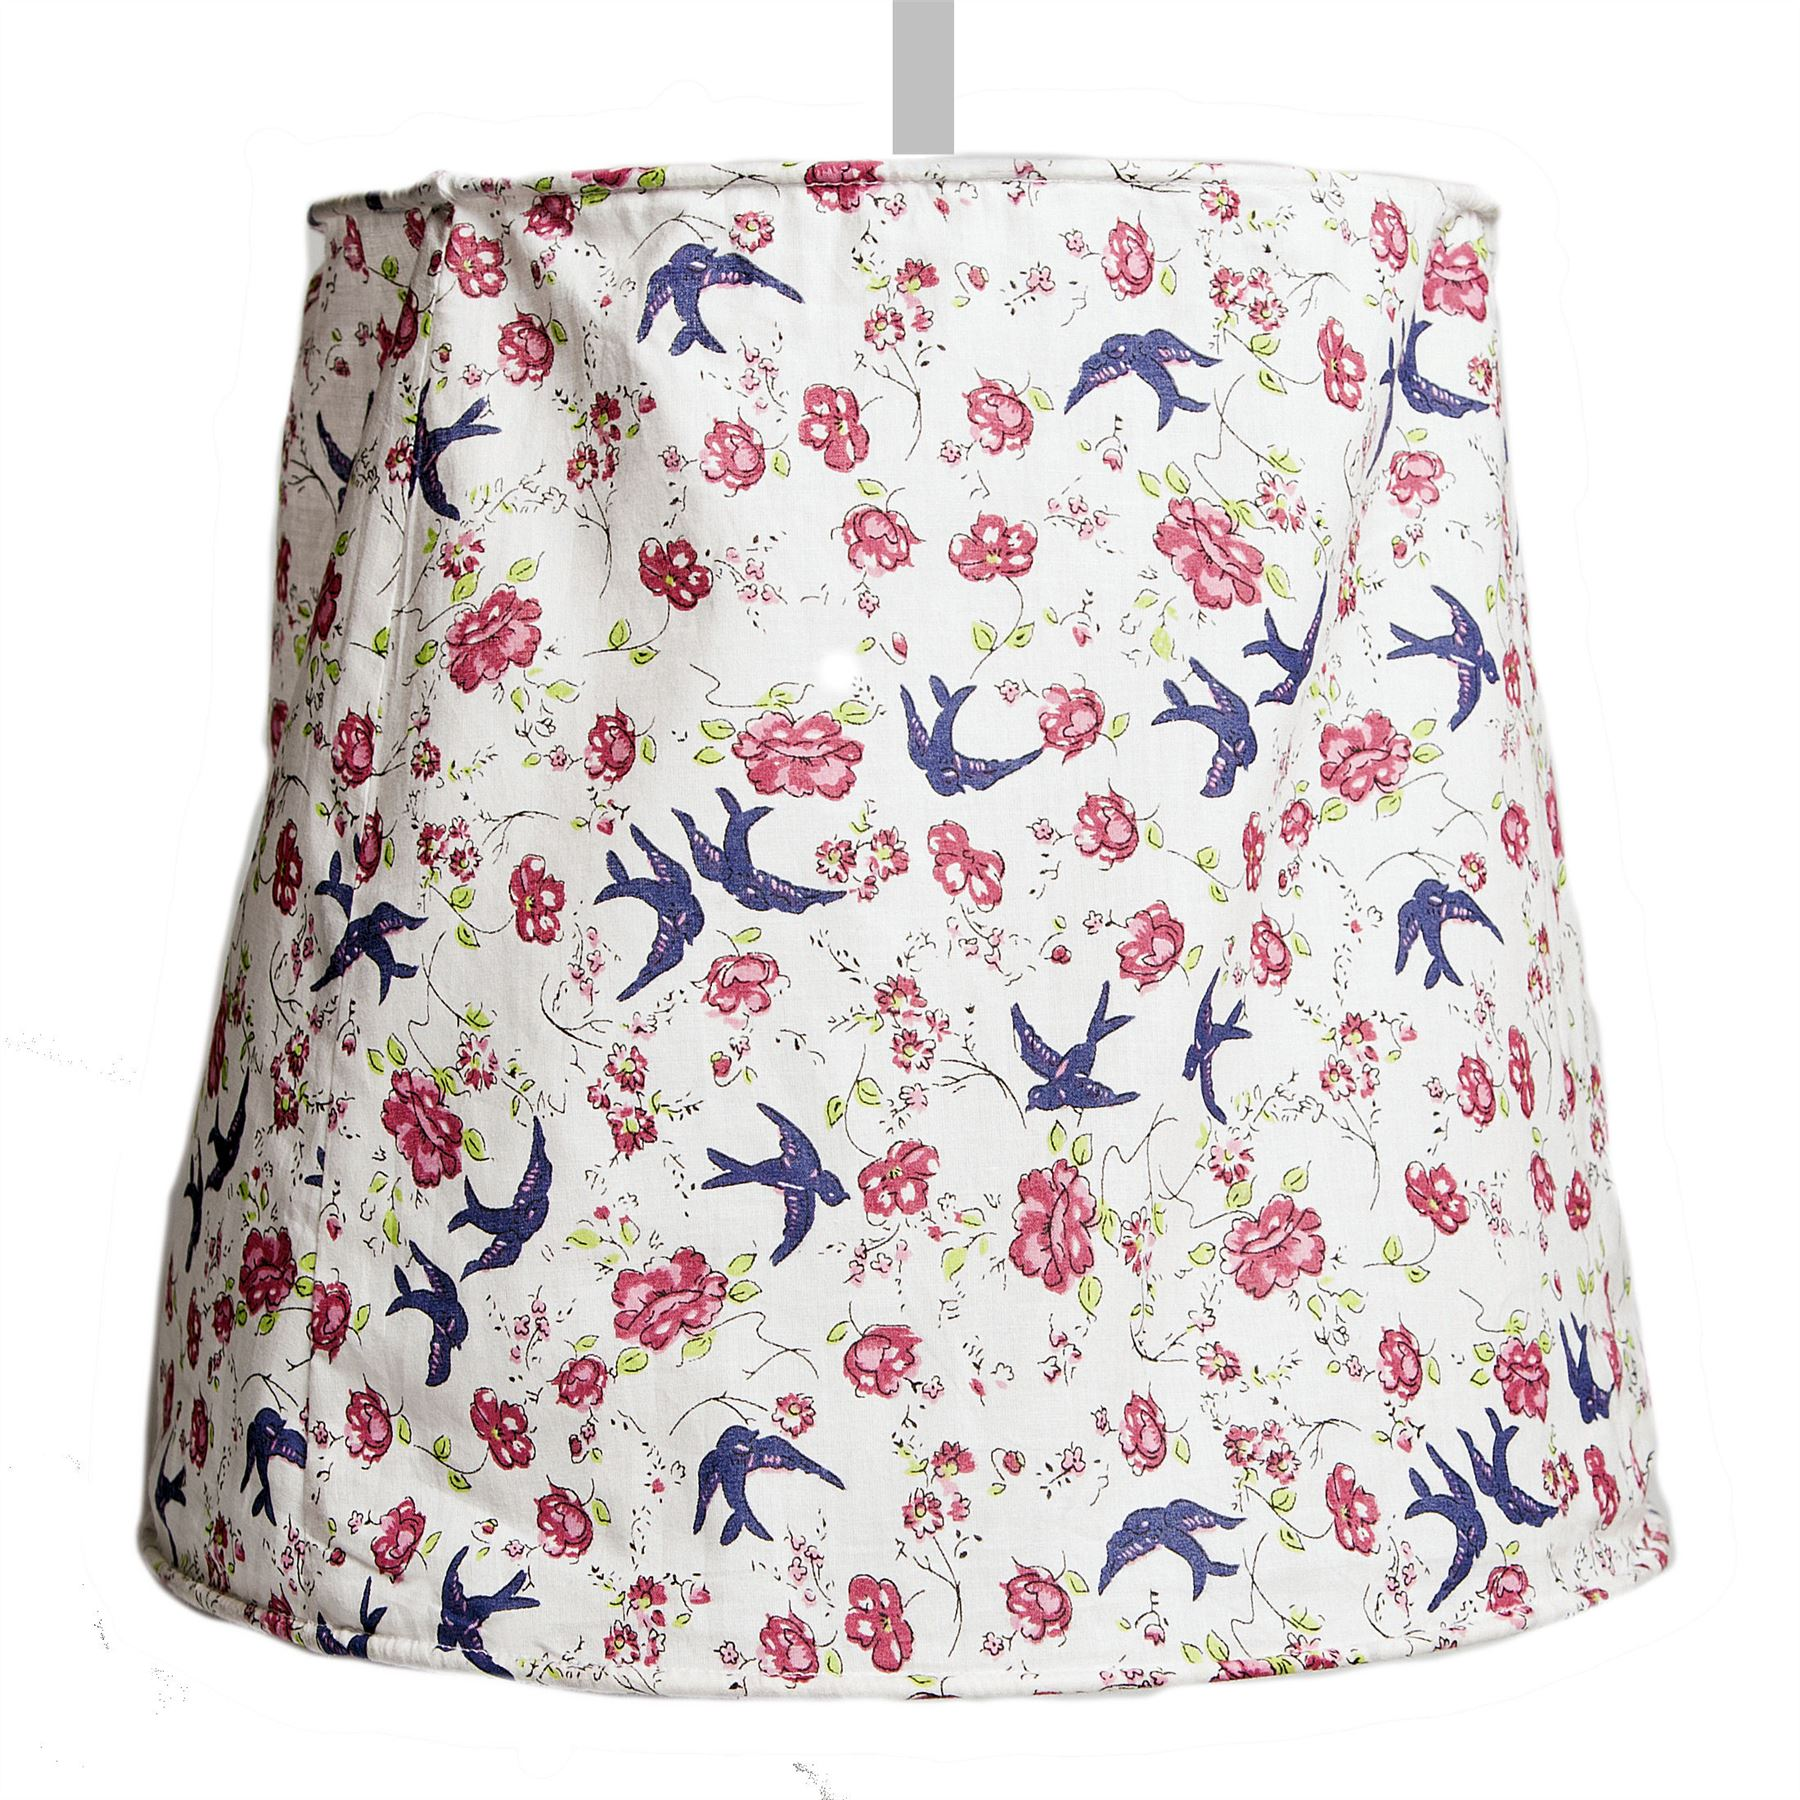 FABRIC CEILING LIGHT LAMP SHADE VINTAGE SHABBY ROSE FLORAL BEDROOM CHIC  eBay